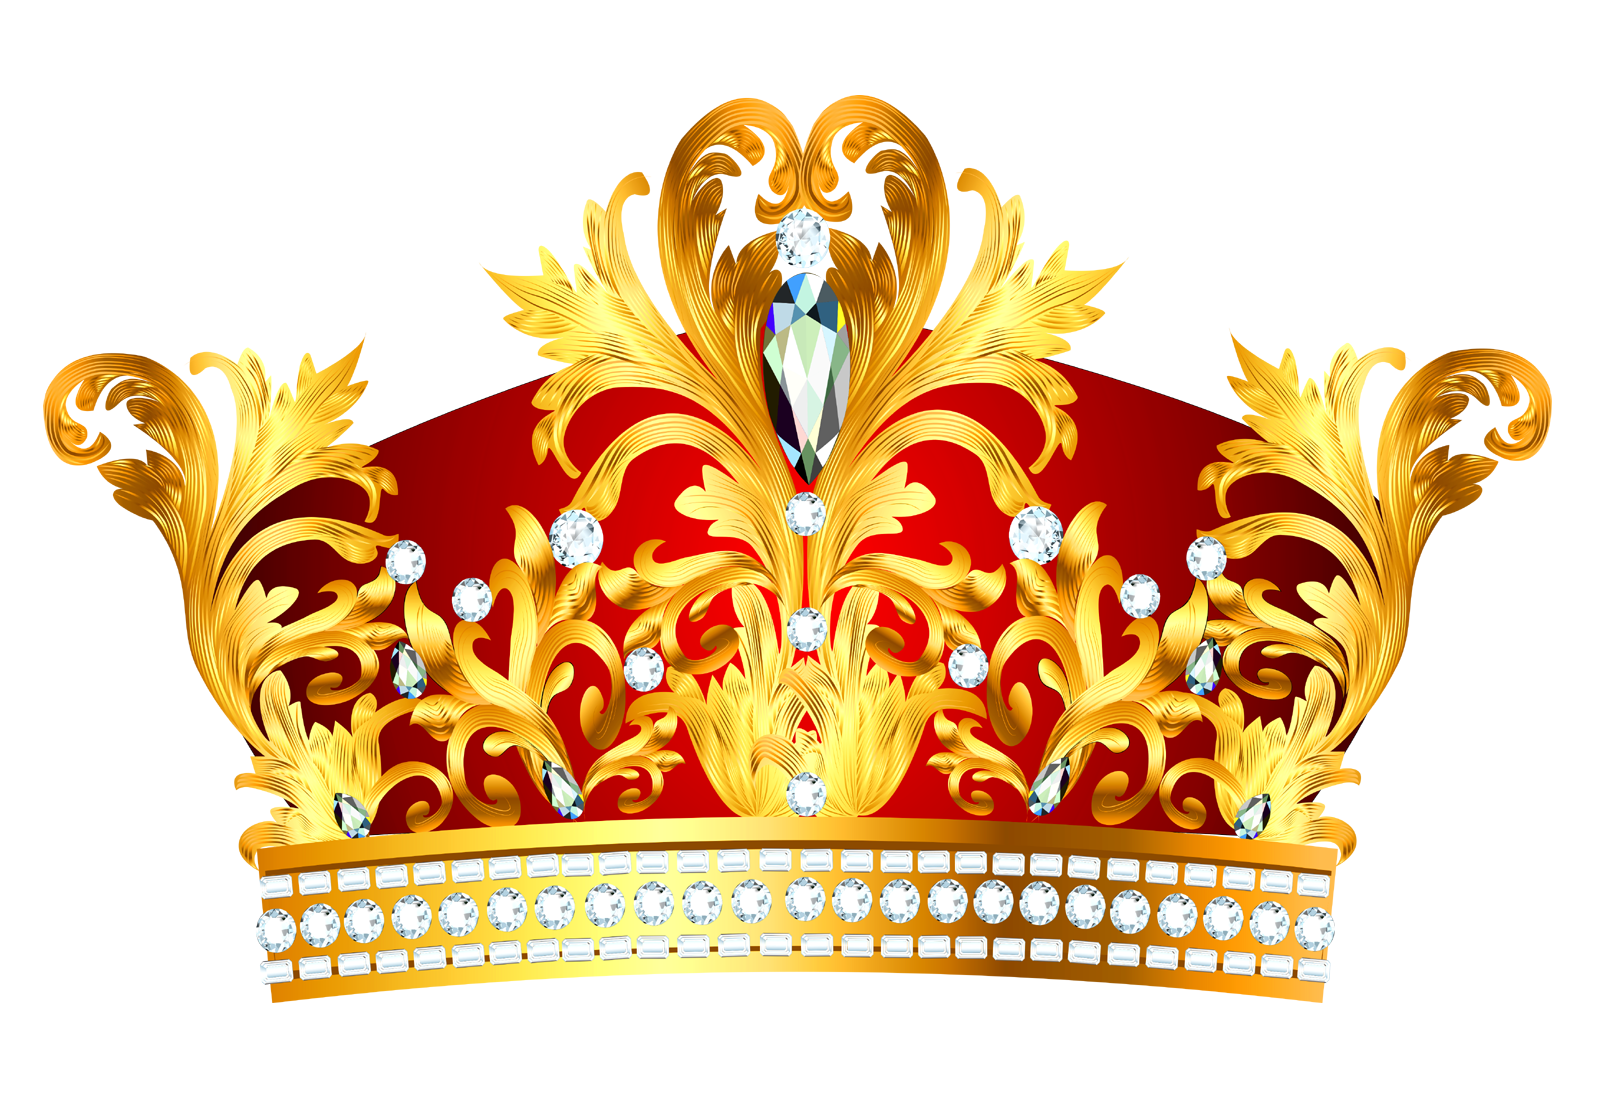 Real King Crowns Png crown png images free download - princess, queen ...